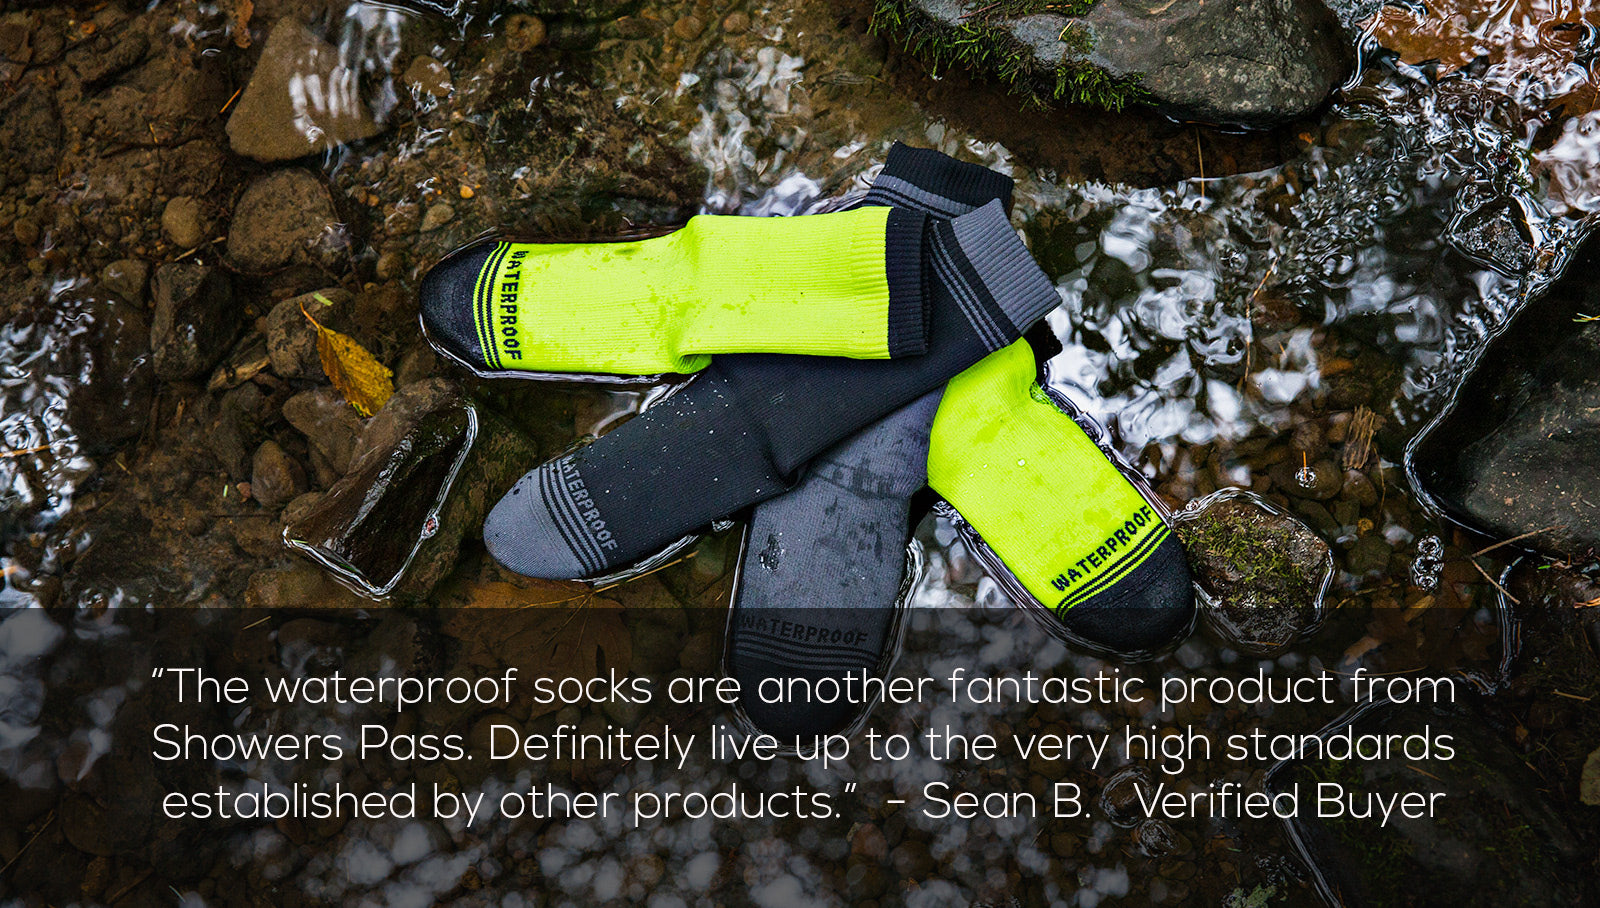 Crosspoint Waterproof Socks review